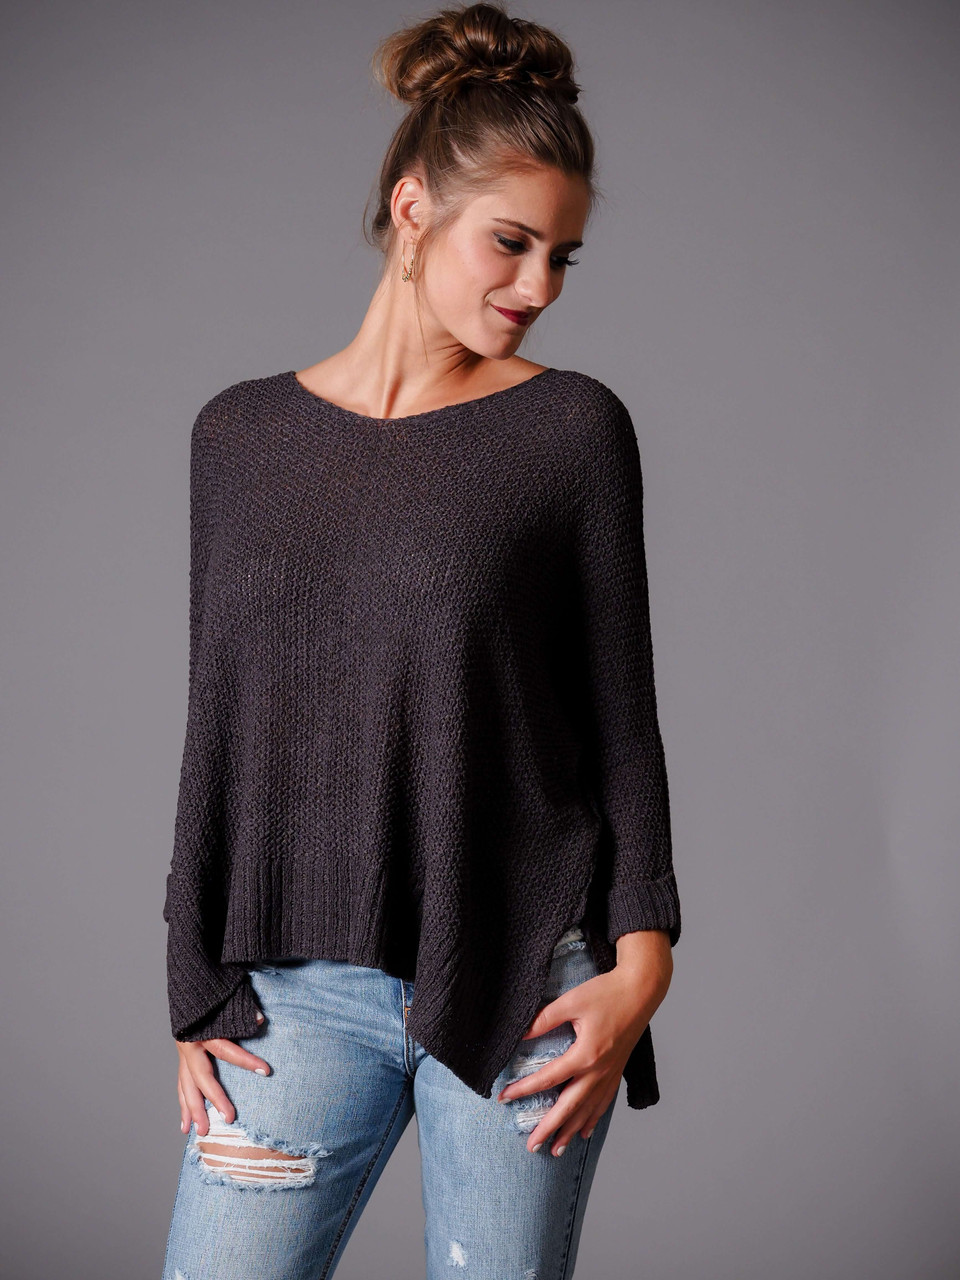 charcoal gray pullover sweater